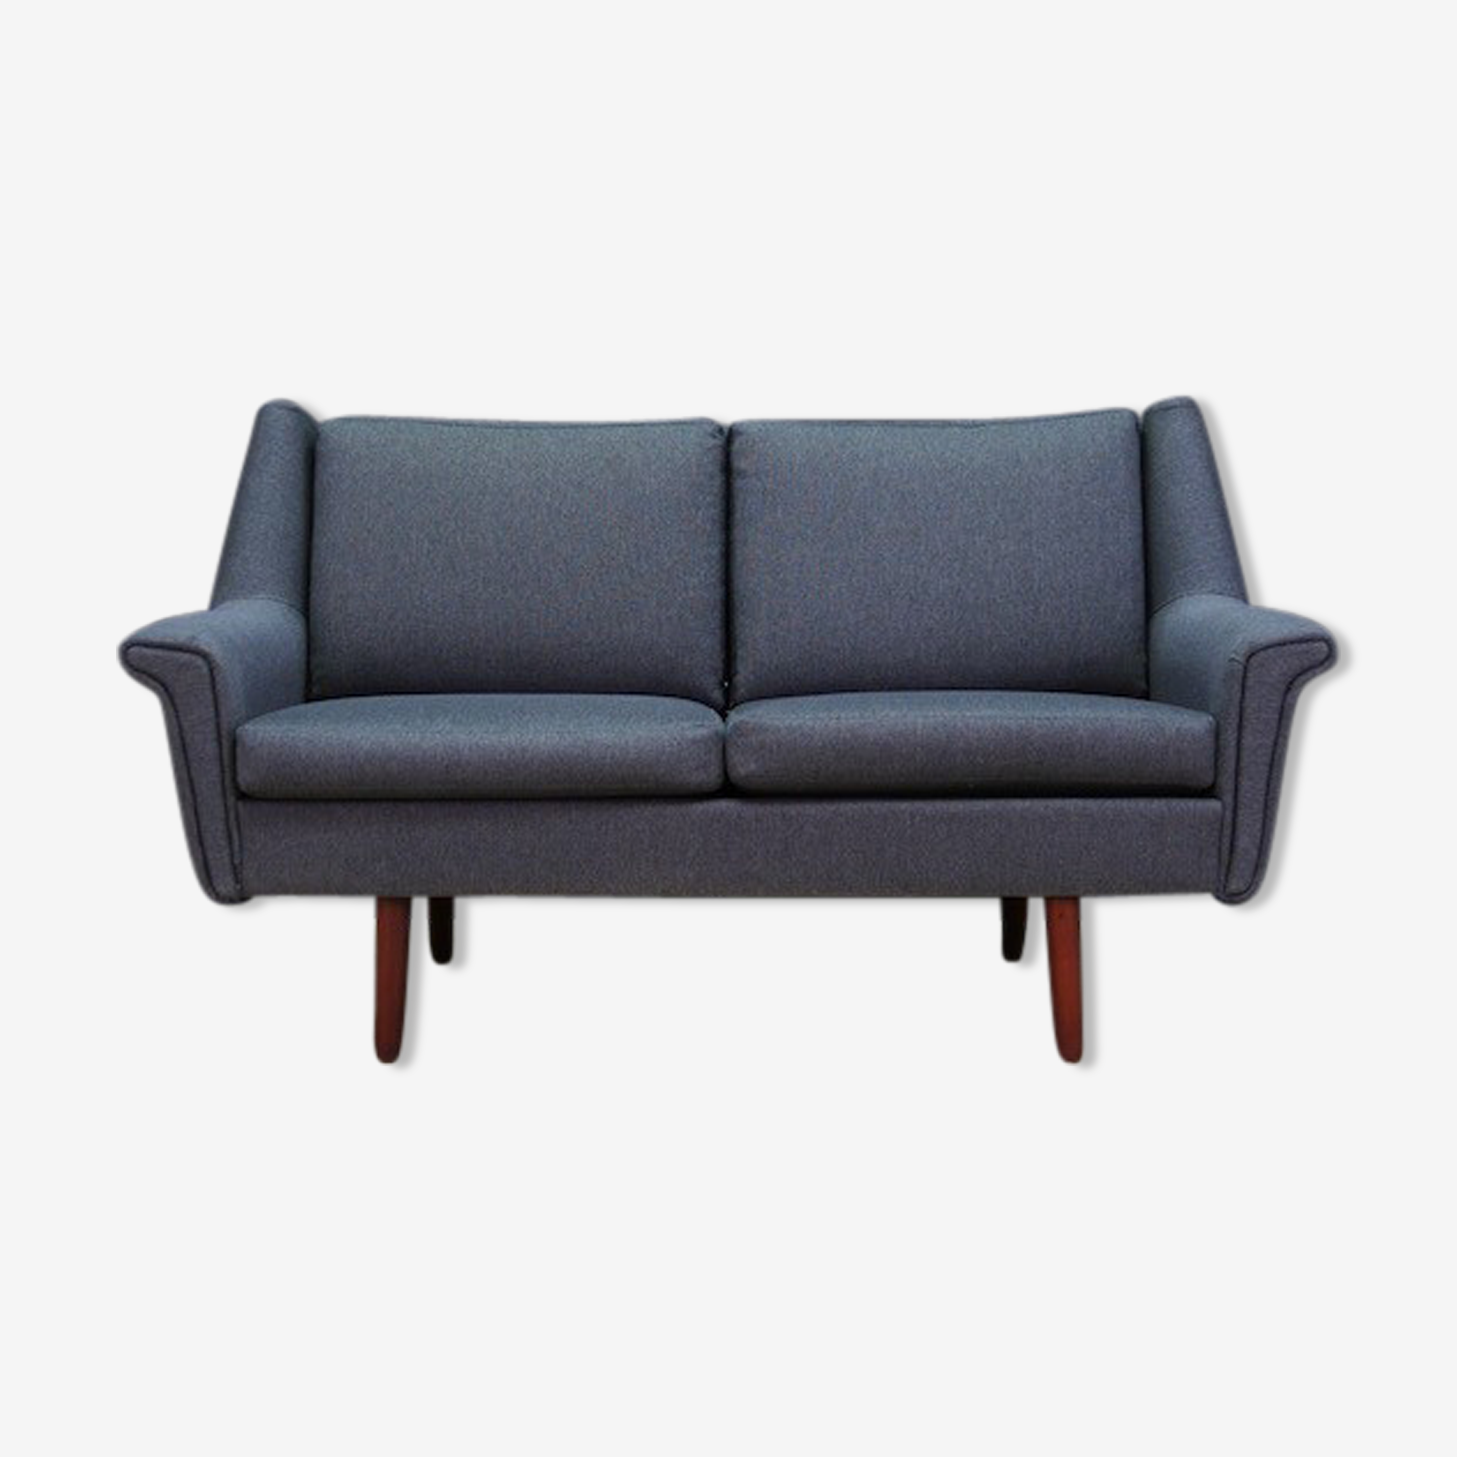 Sofa danois design